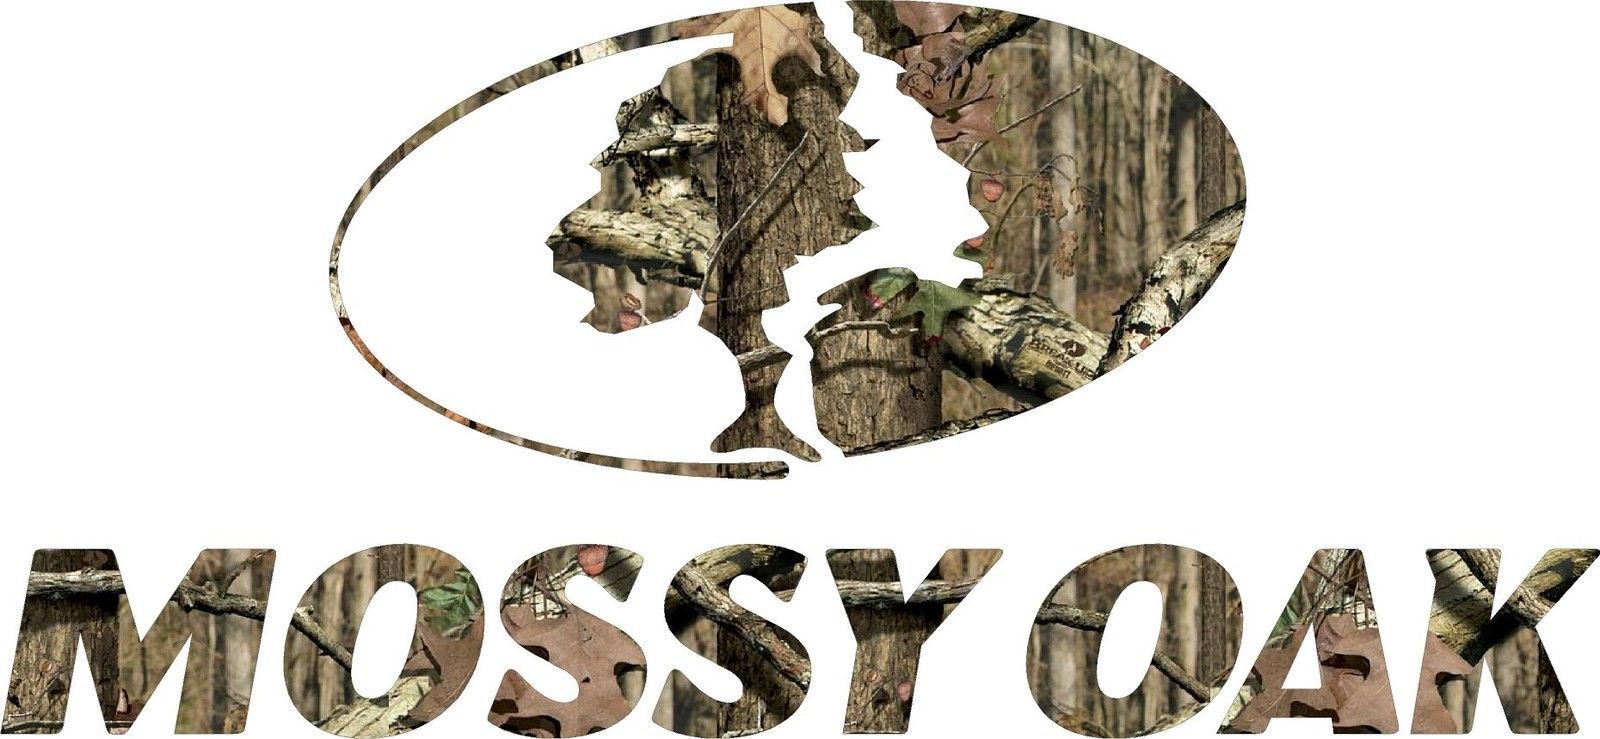 The Complete Buff Collection Mossy Oak Buff Collection available 1600x739